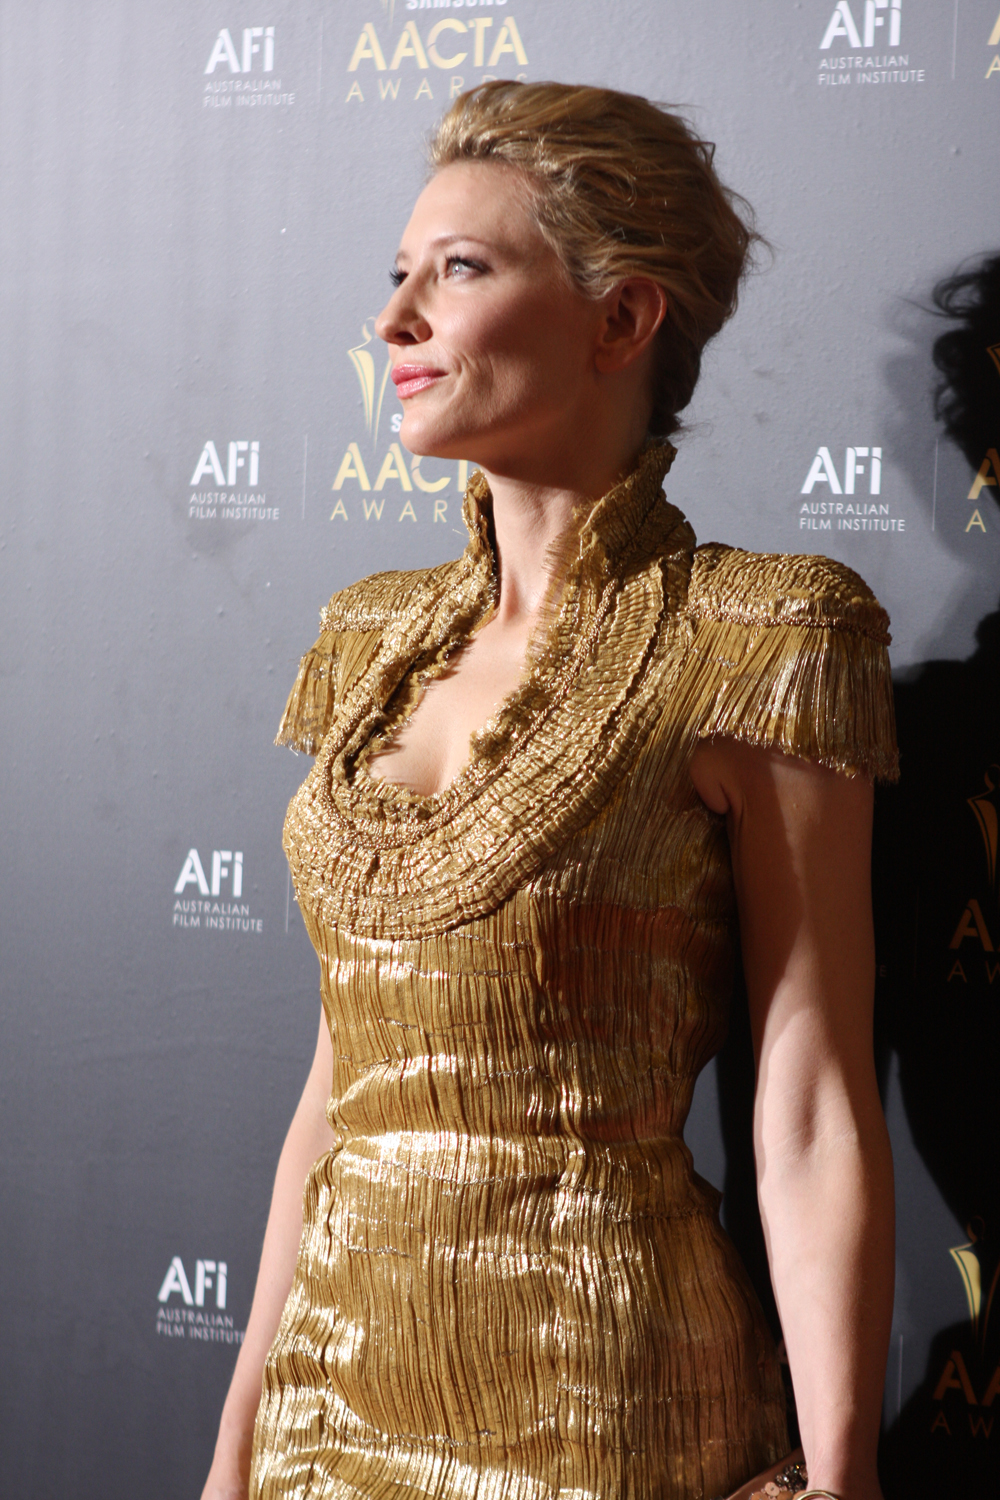 File:Cate Blanchett at the AACTA Awards (2012) 5.jpg ... Cate Blanchett Wikipedia